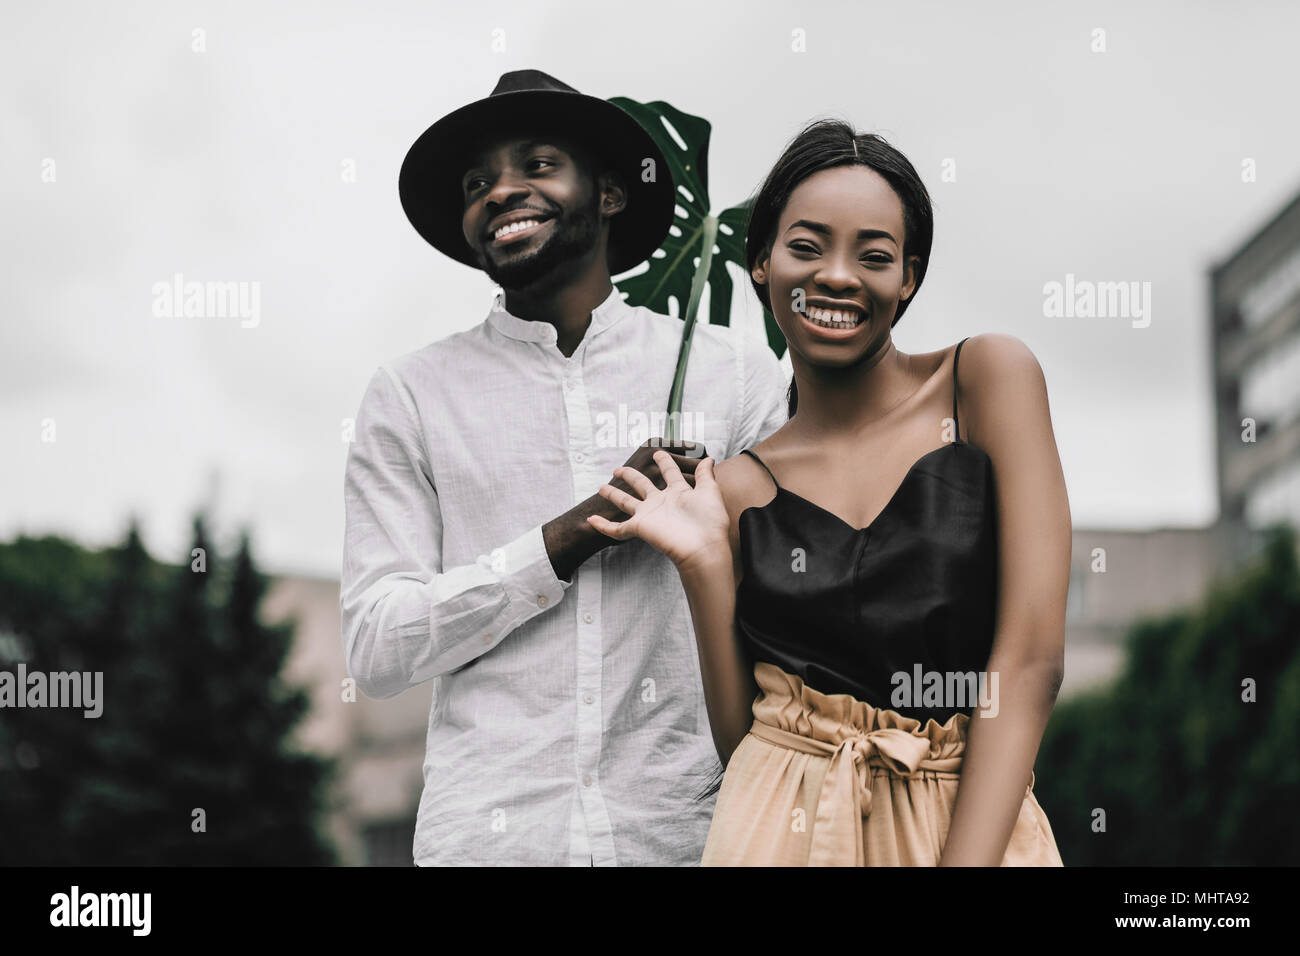 African American Love Couple Happy Relationship Smiling Black People Stock Photo Alamy